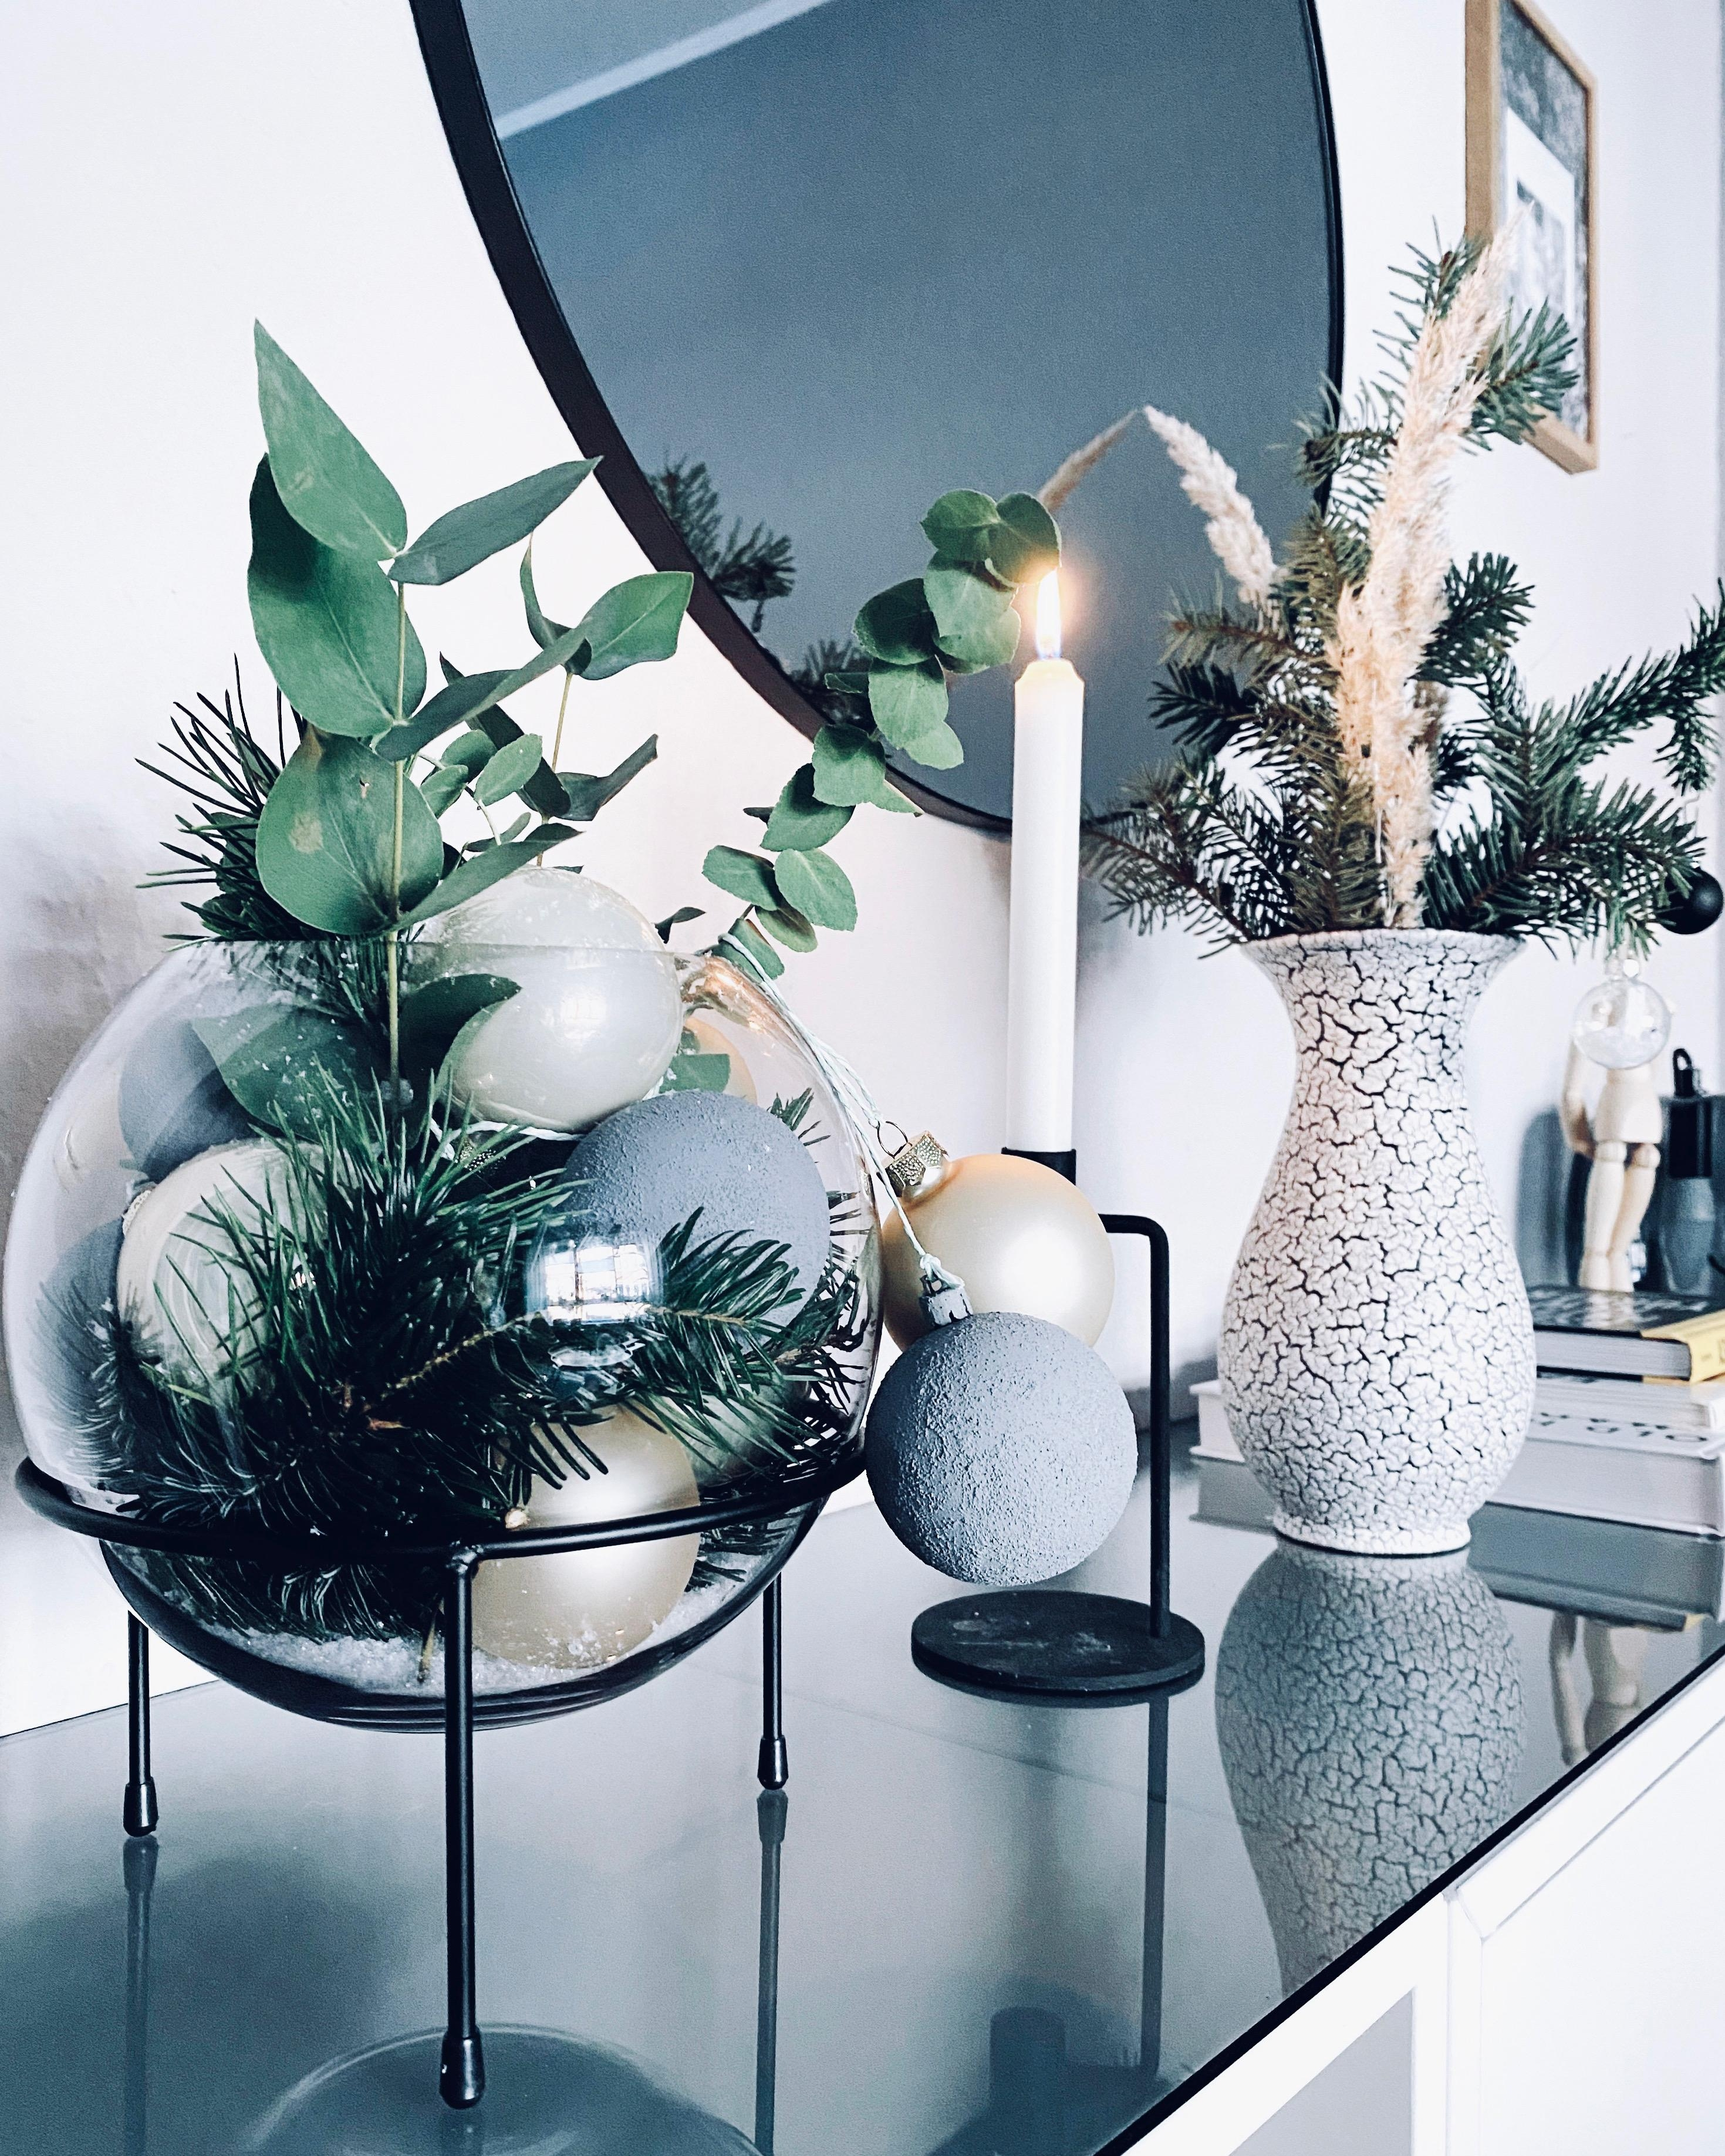 #xmas #xmasdecorations #xmasiscoming #interior #hygge #monochrome #mynordicroom #scandinavianliving